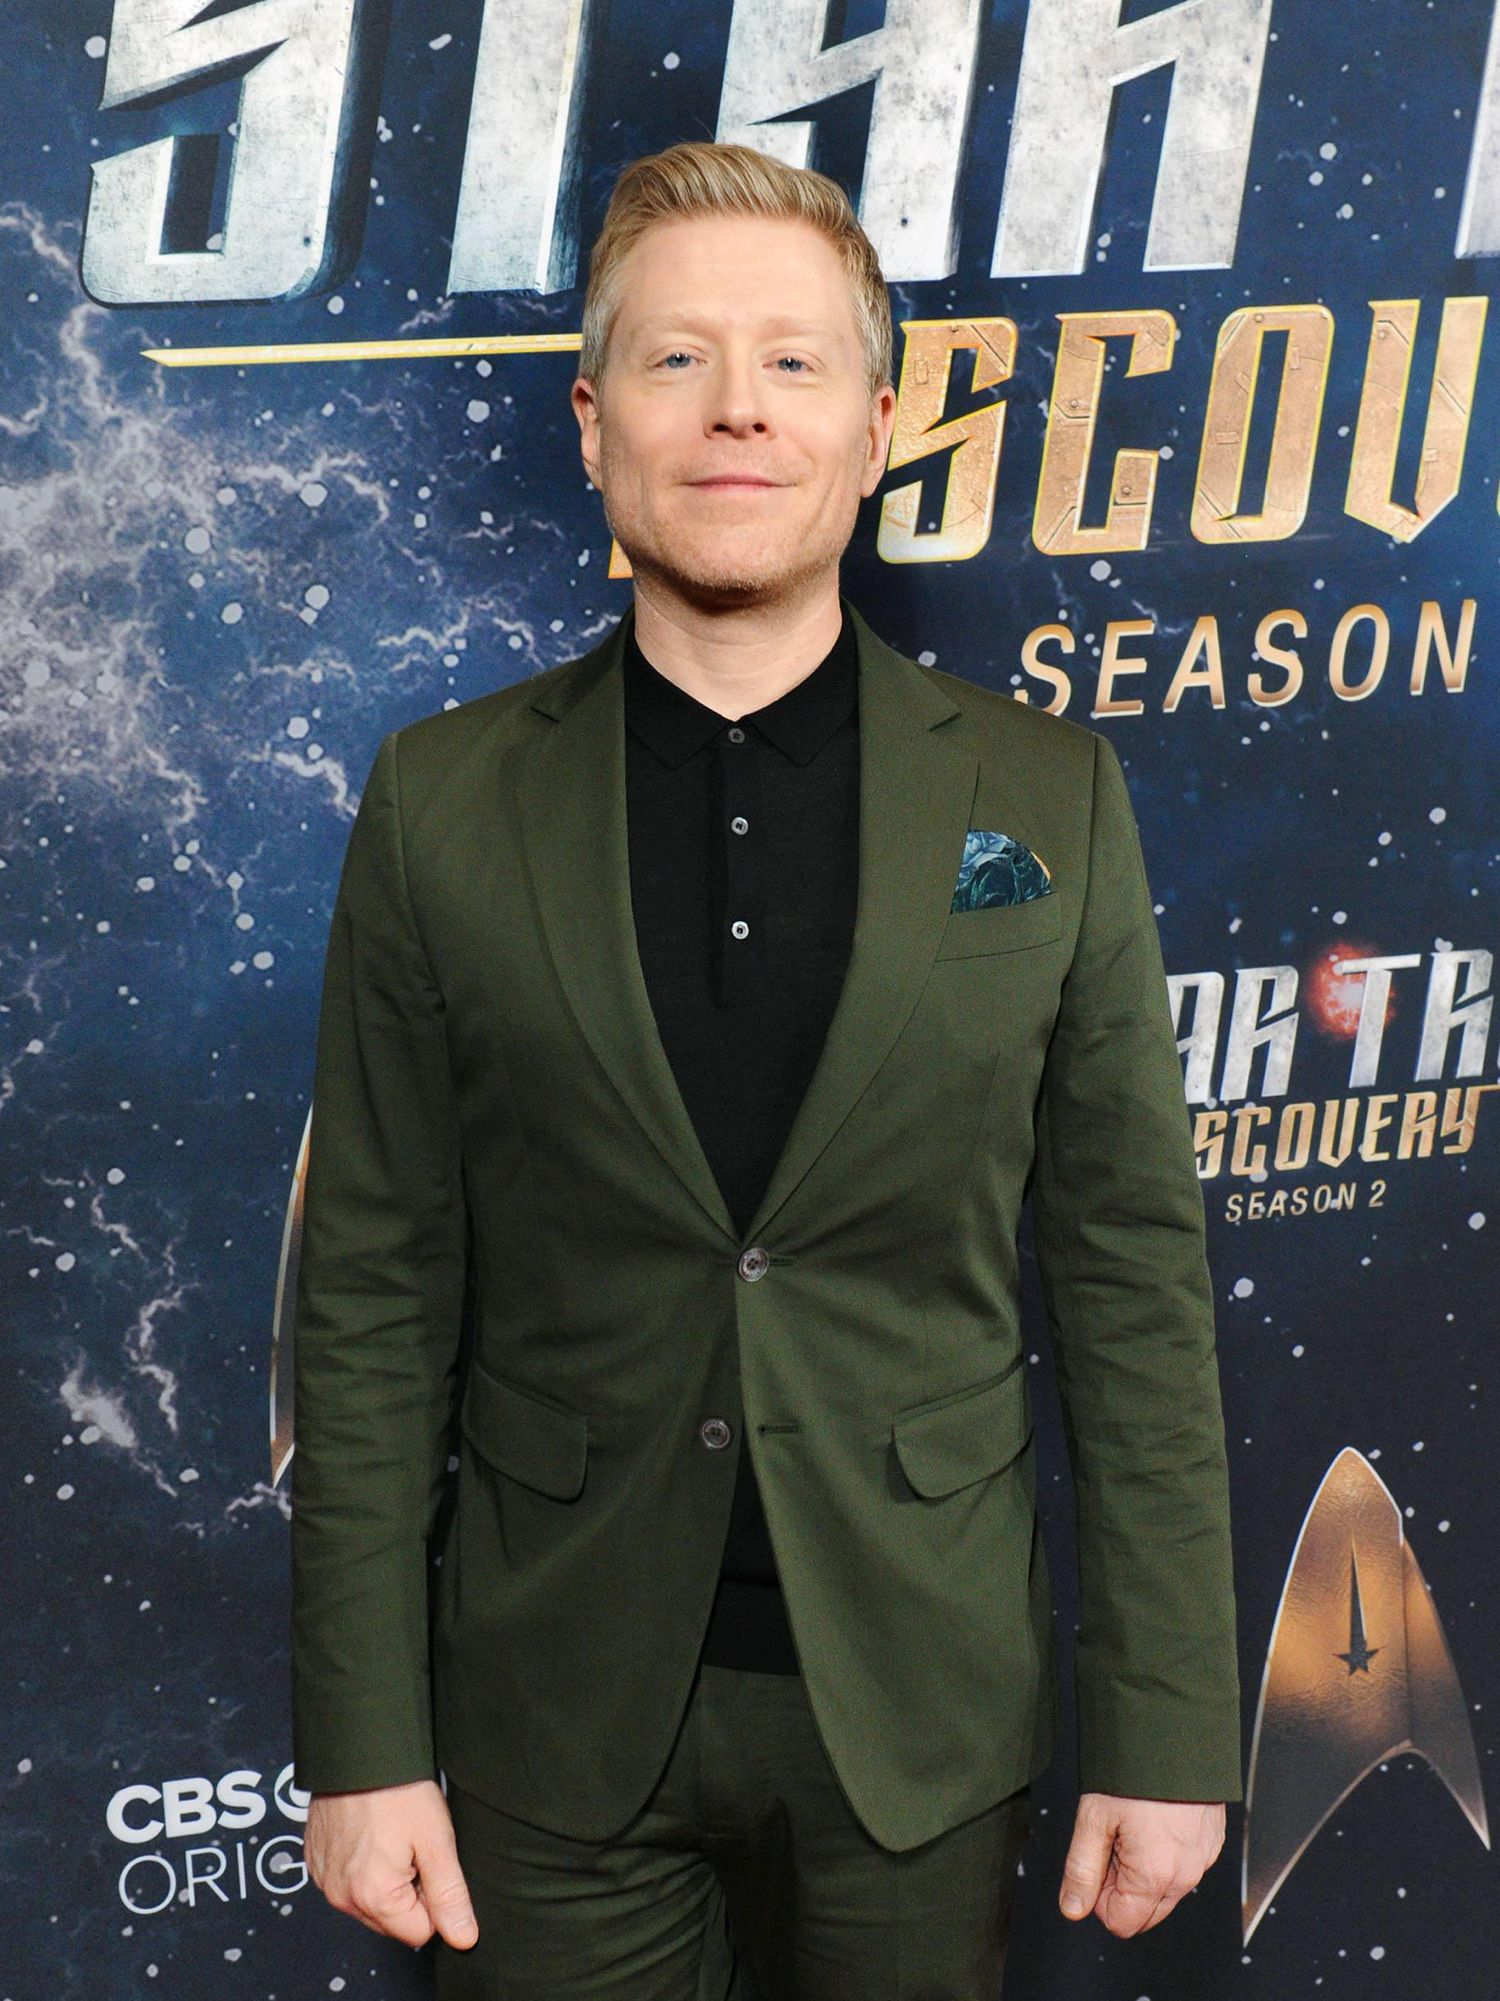 Actor Anthony Rapp of Star Trek: Discovery at a CBS press event